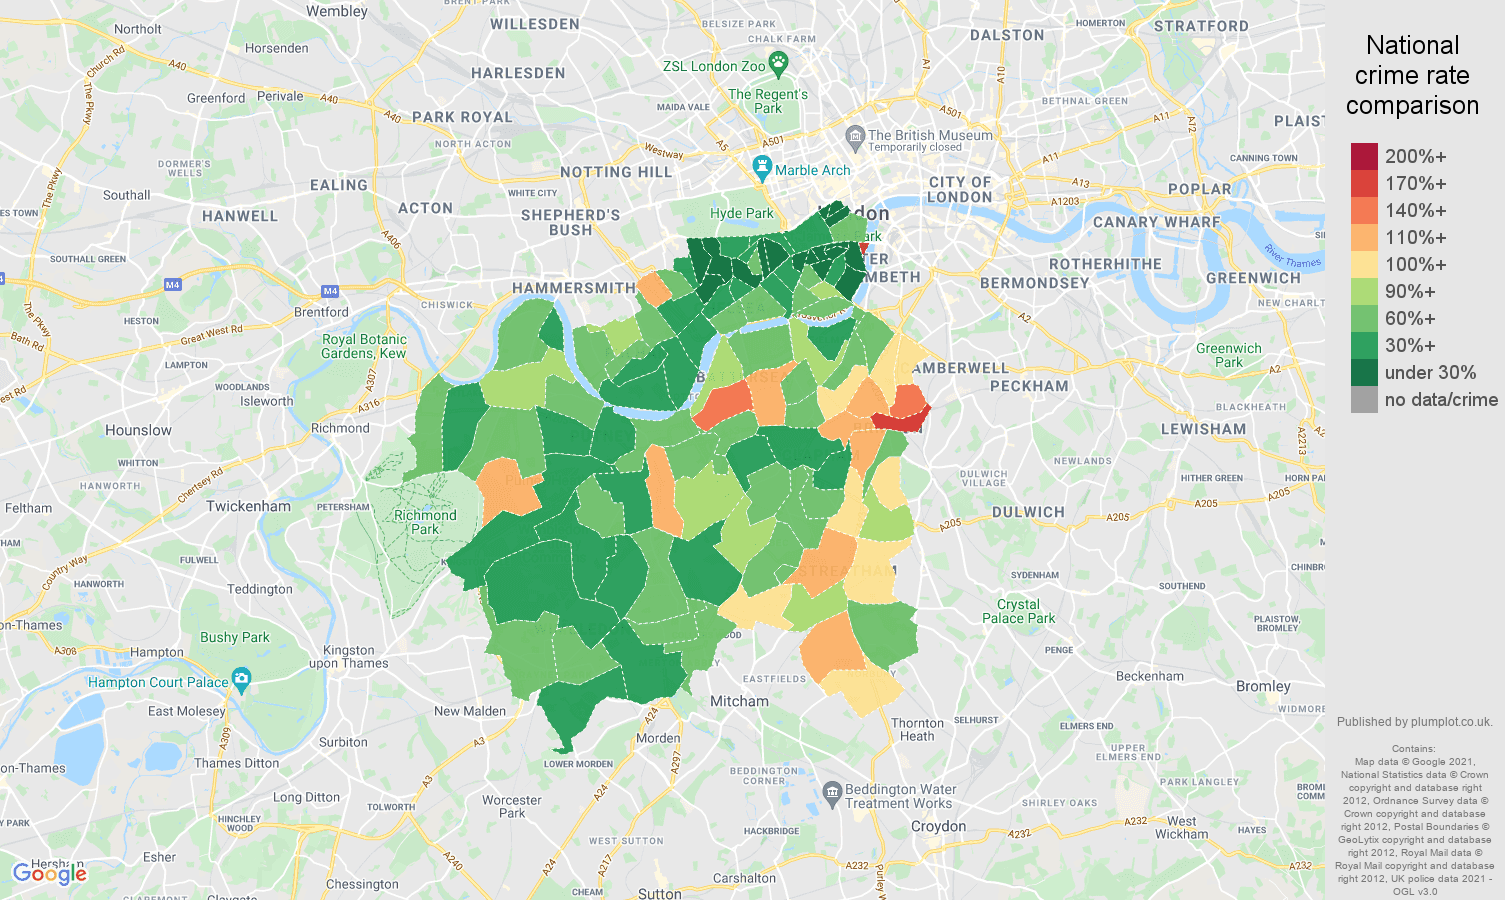 South West London criminal damage and arson crime rate comparison map